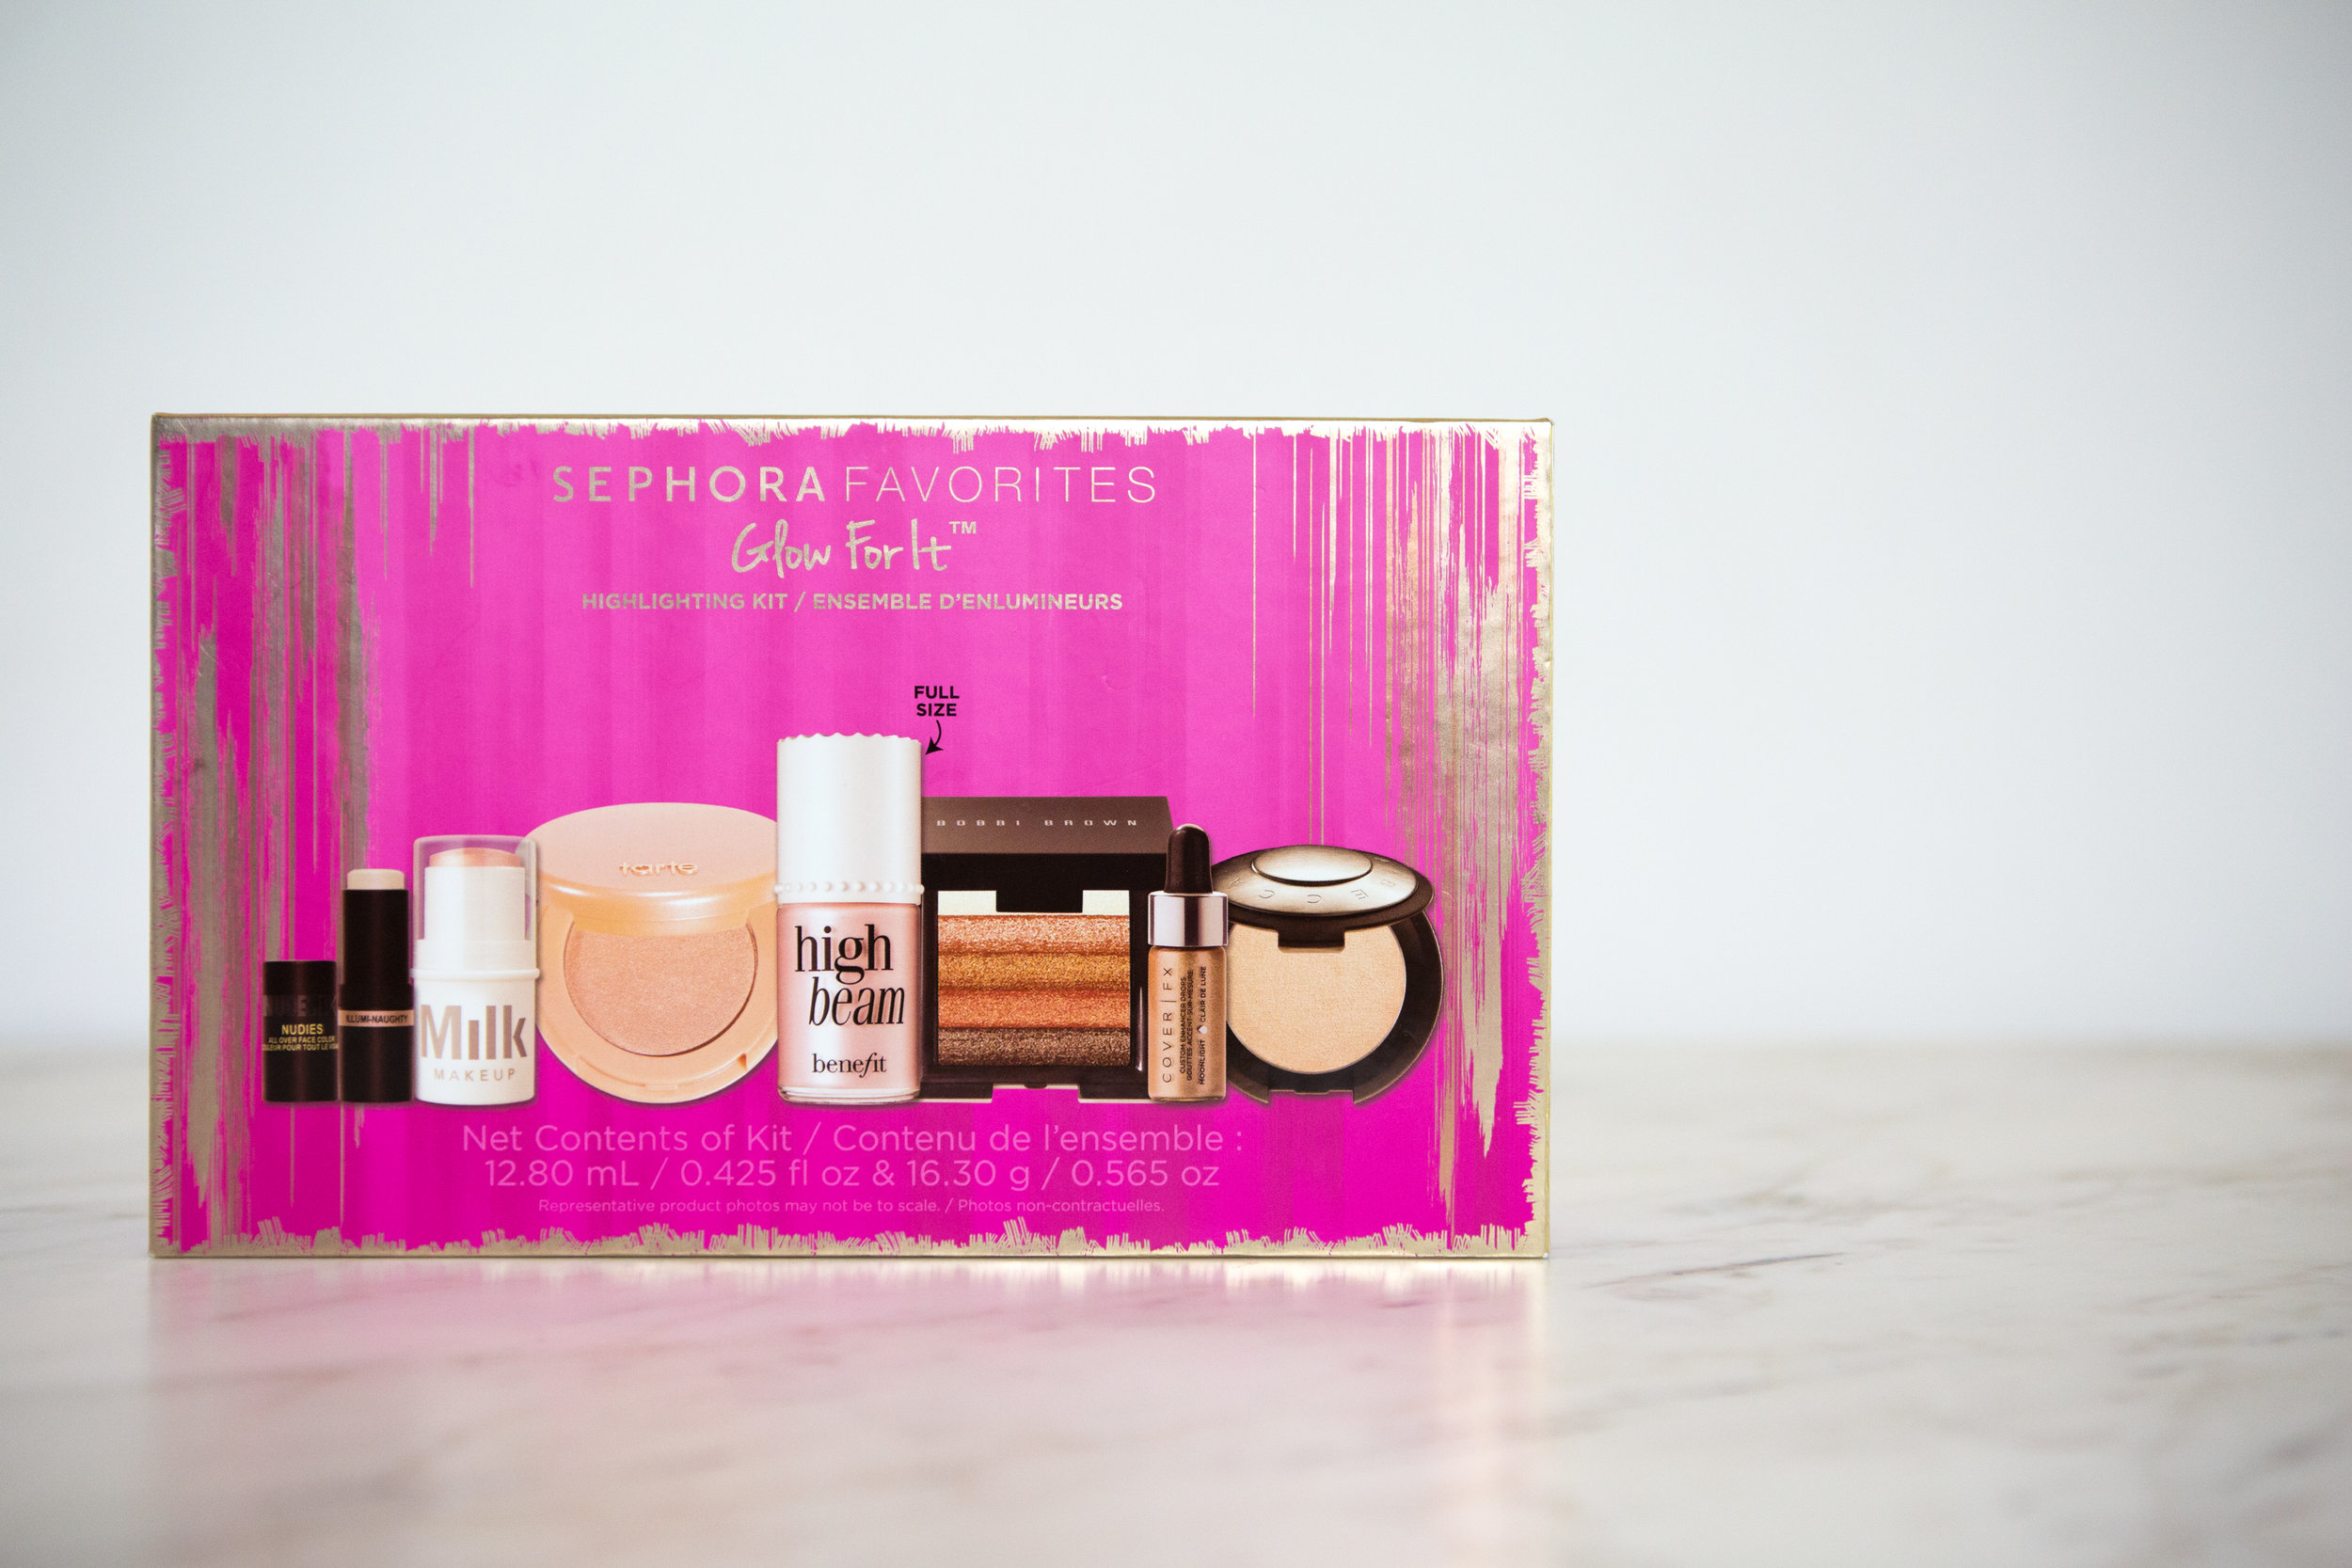 Glow For It Box From Sephora Photography: Iana kozelsky